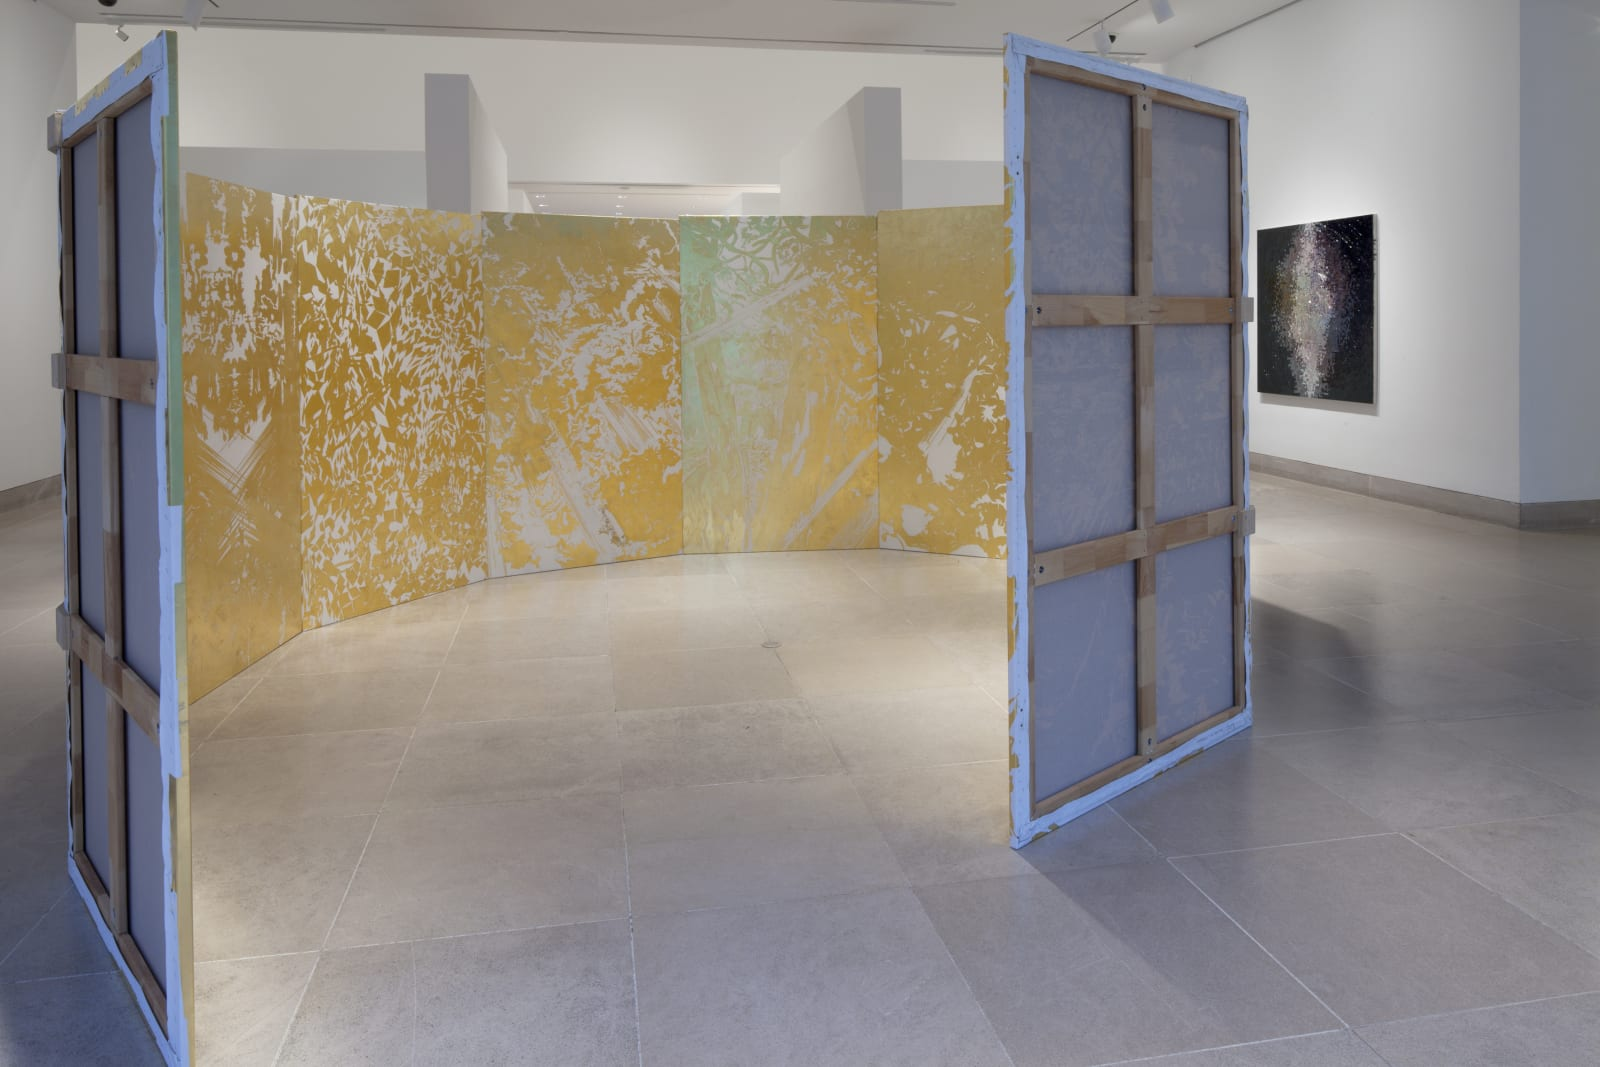 <p><span>Installation view: 'Jim Hodges: Give More Than You Take', Dallas Museum of Art, Dallas, Texas (2013)</span></p>